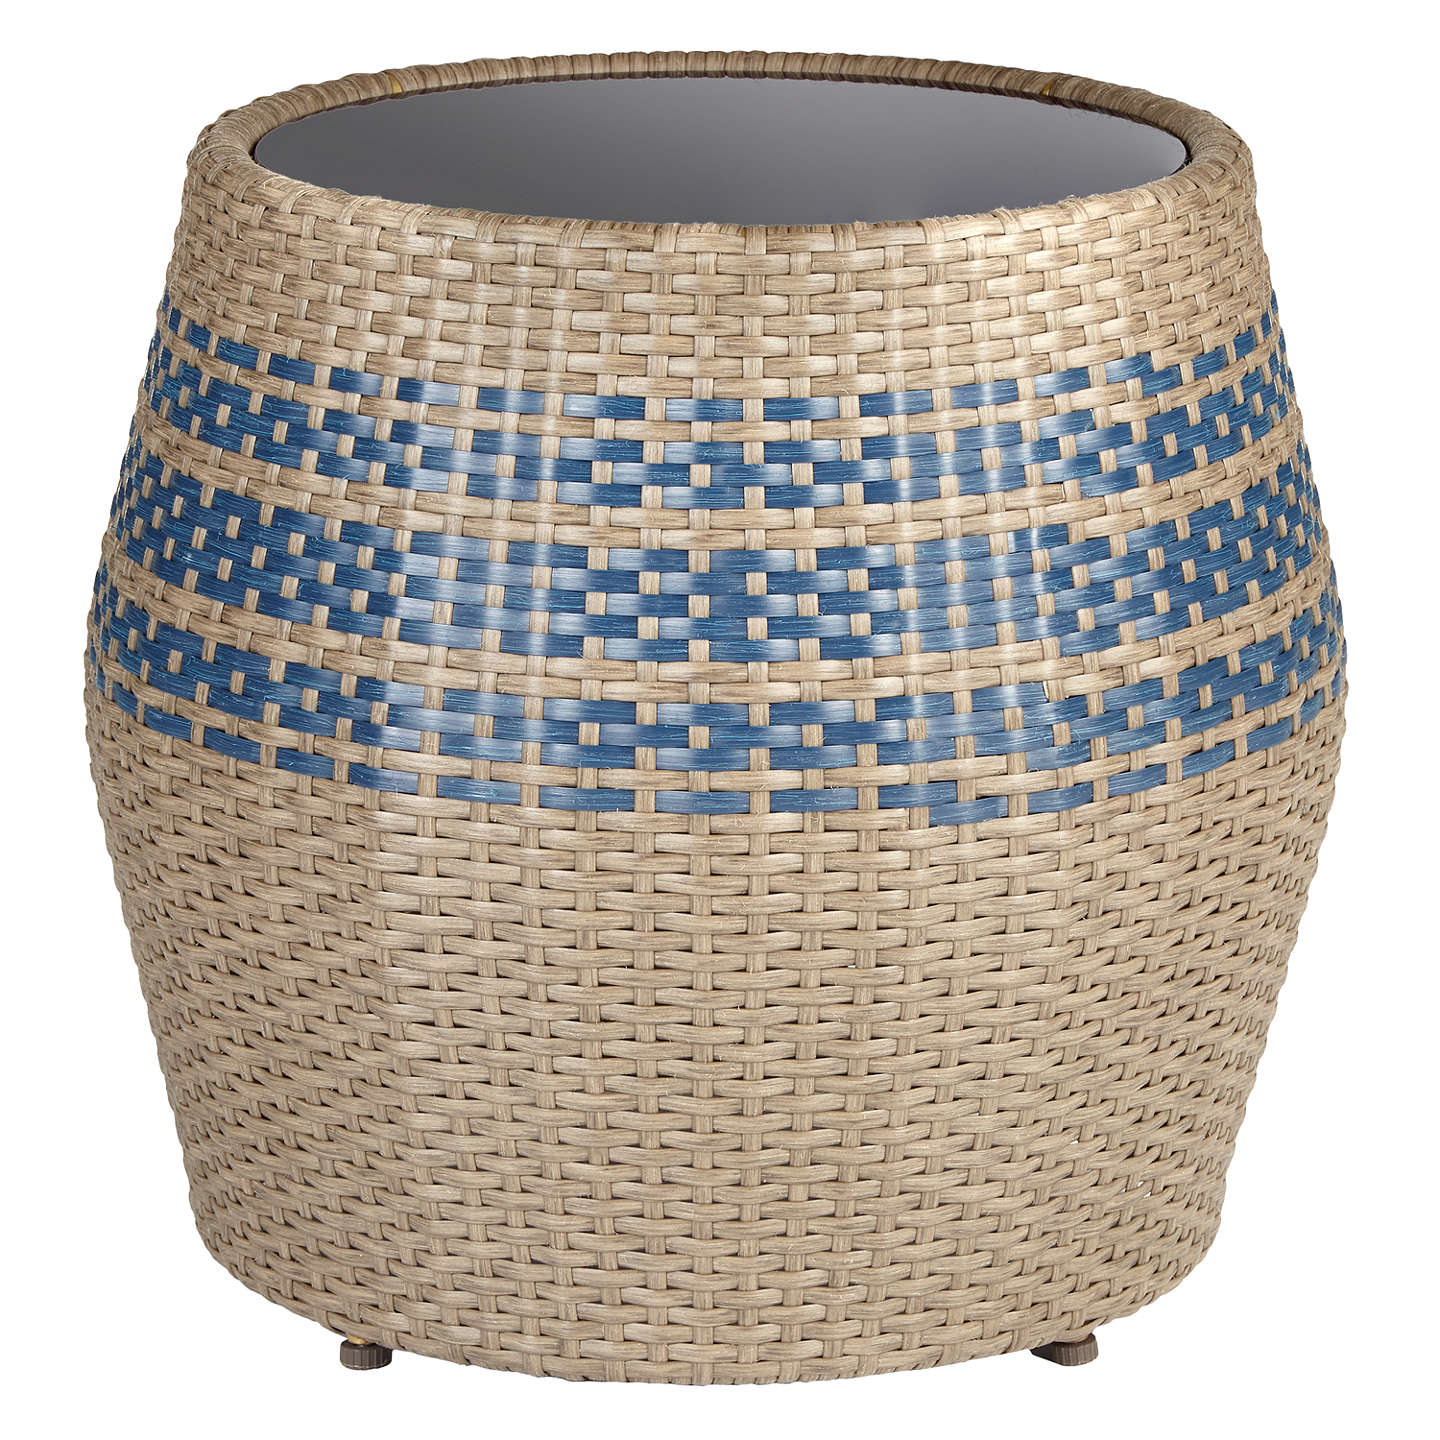 BuyJohn Lewis Havana Glass-Top Garden Table / Stool, Brown/Blue Online at johnlewis.com